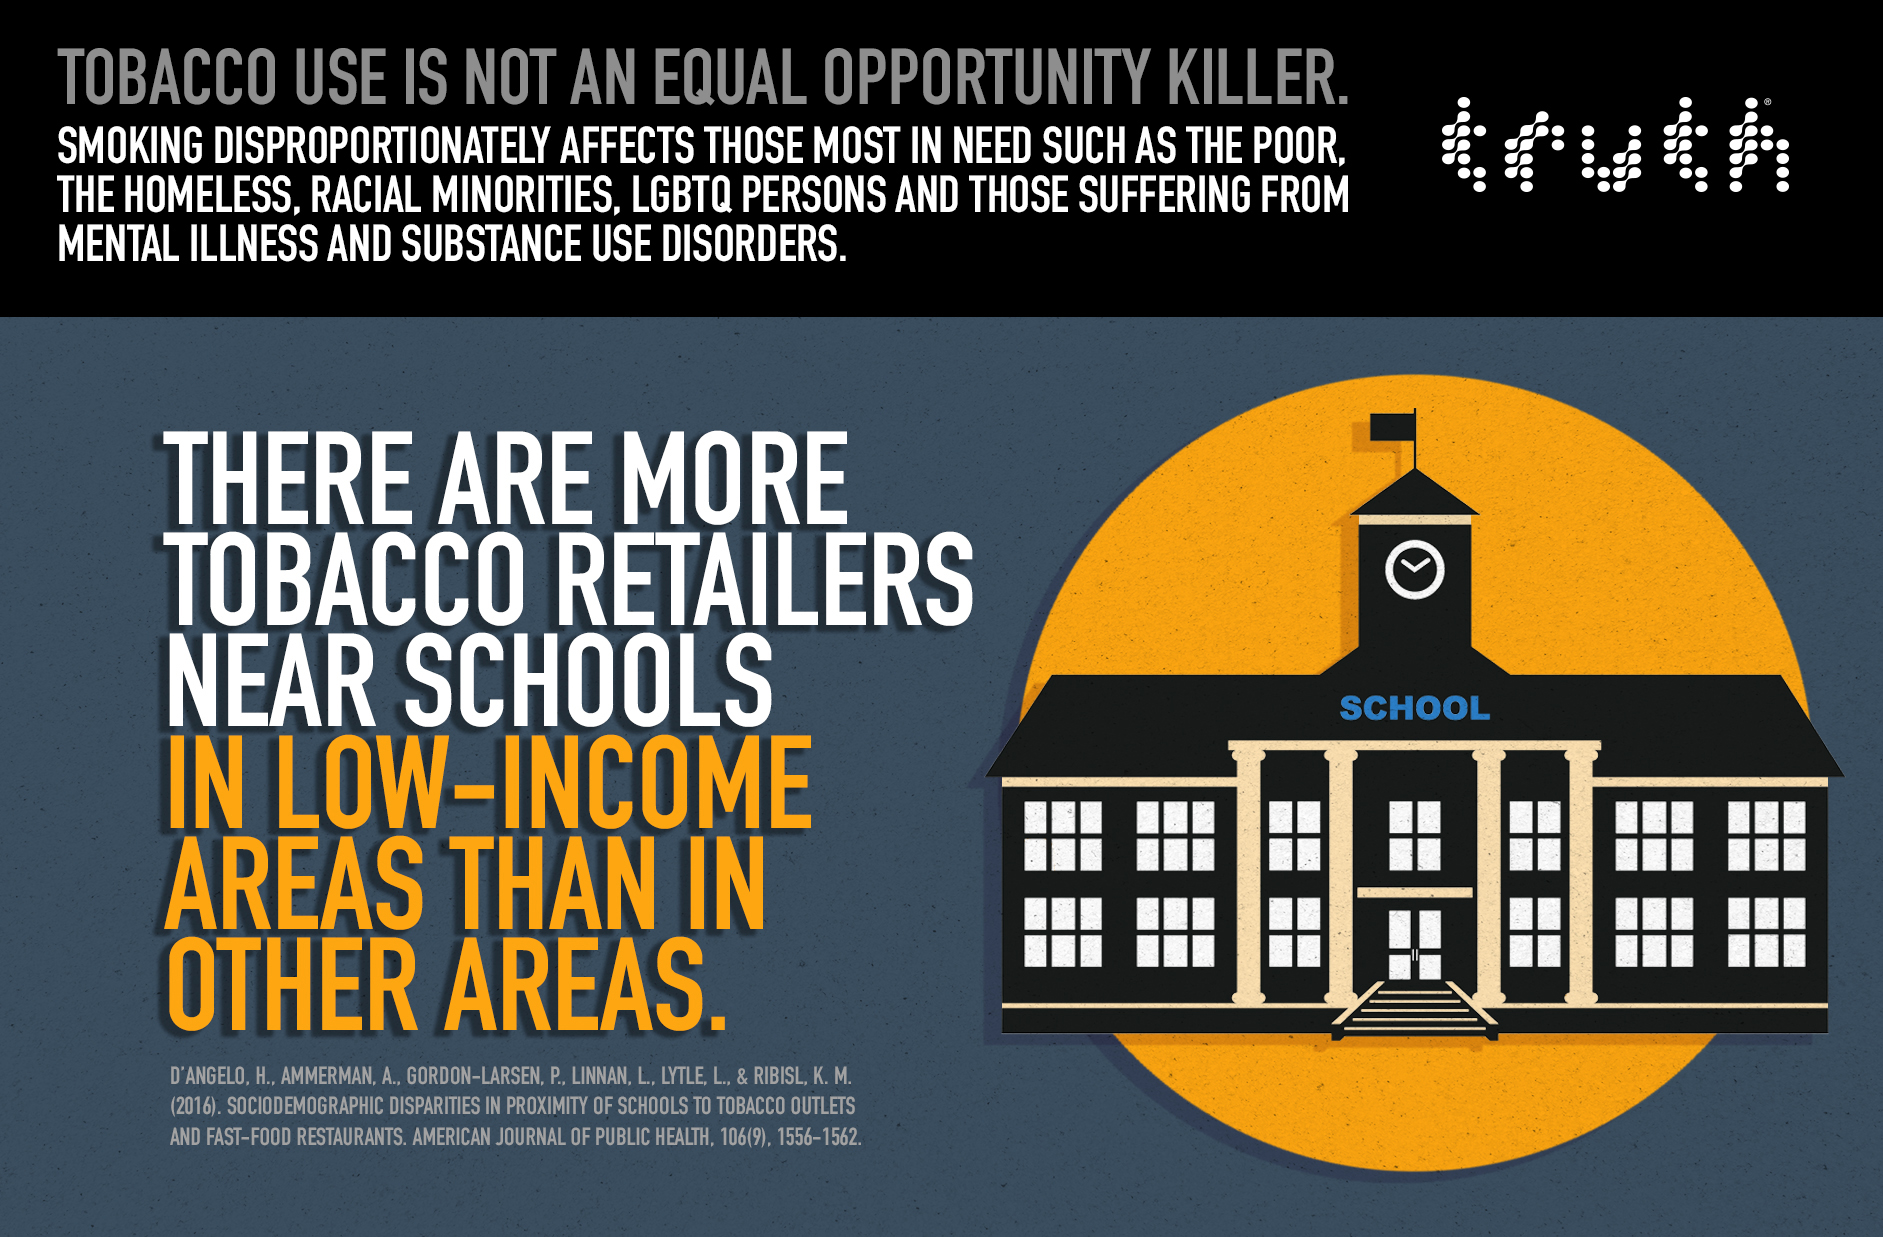 More Tobacco Retailers Near Schools in Low-Income Areas – Infographic